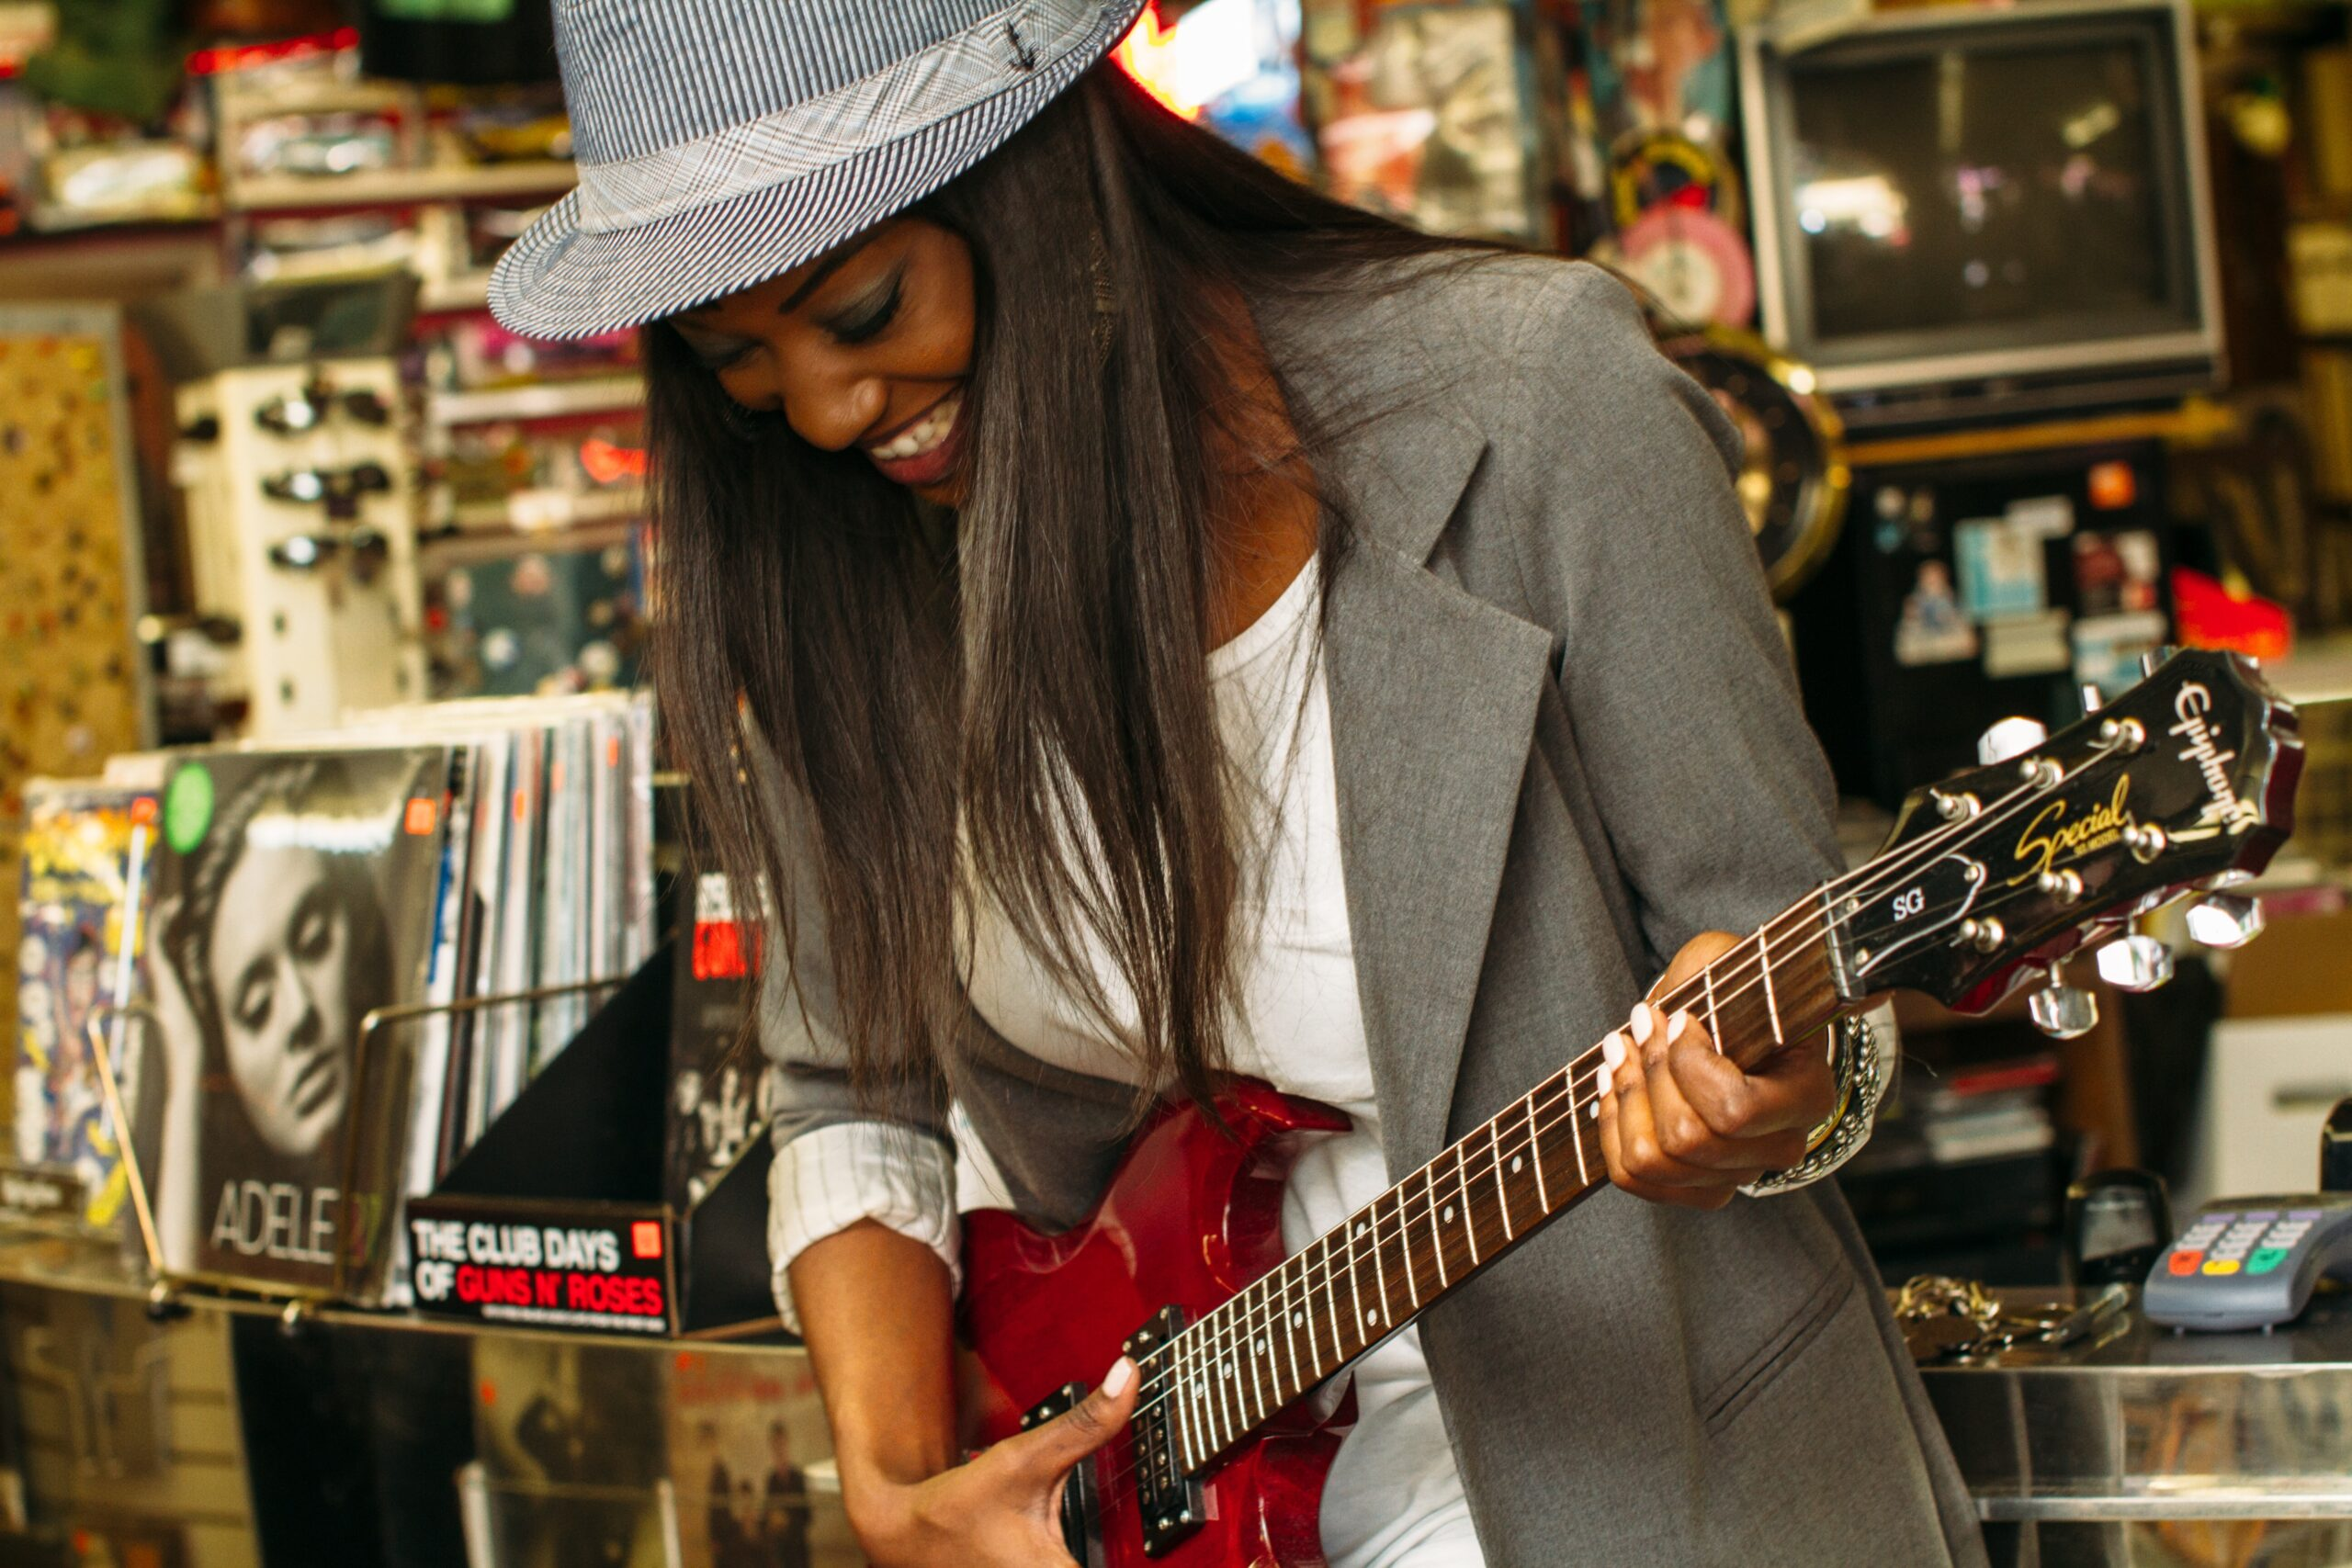 Woman Playing Telecaster Guitar | Top 10 Milestones To Shoot For When Learning To Play Guitar